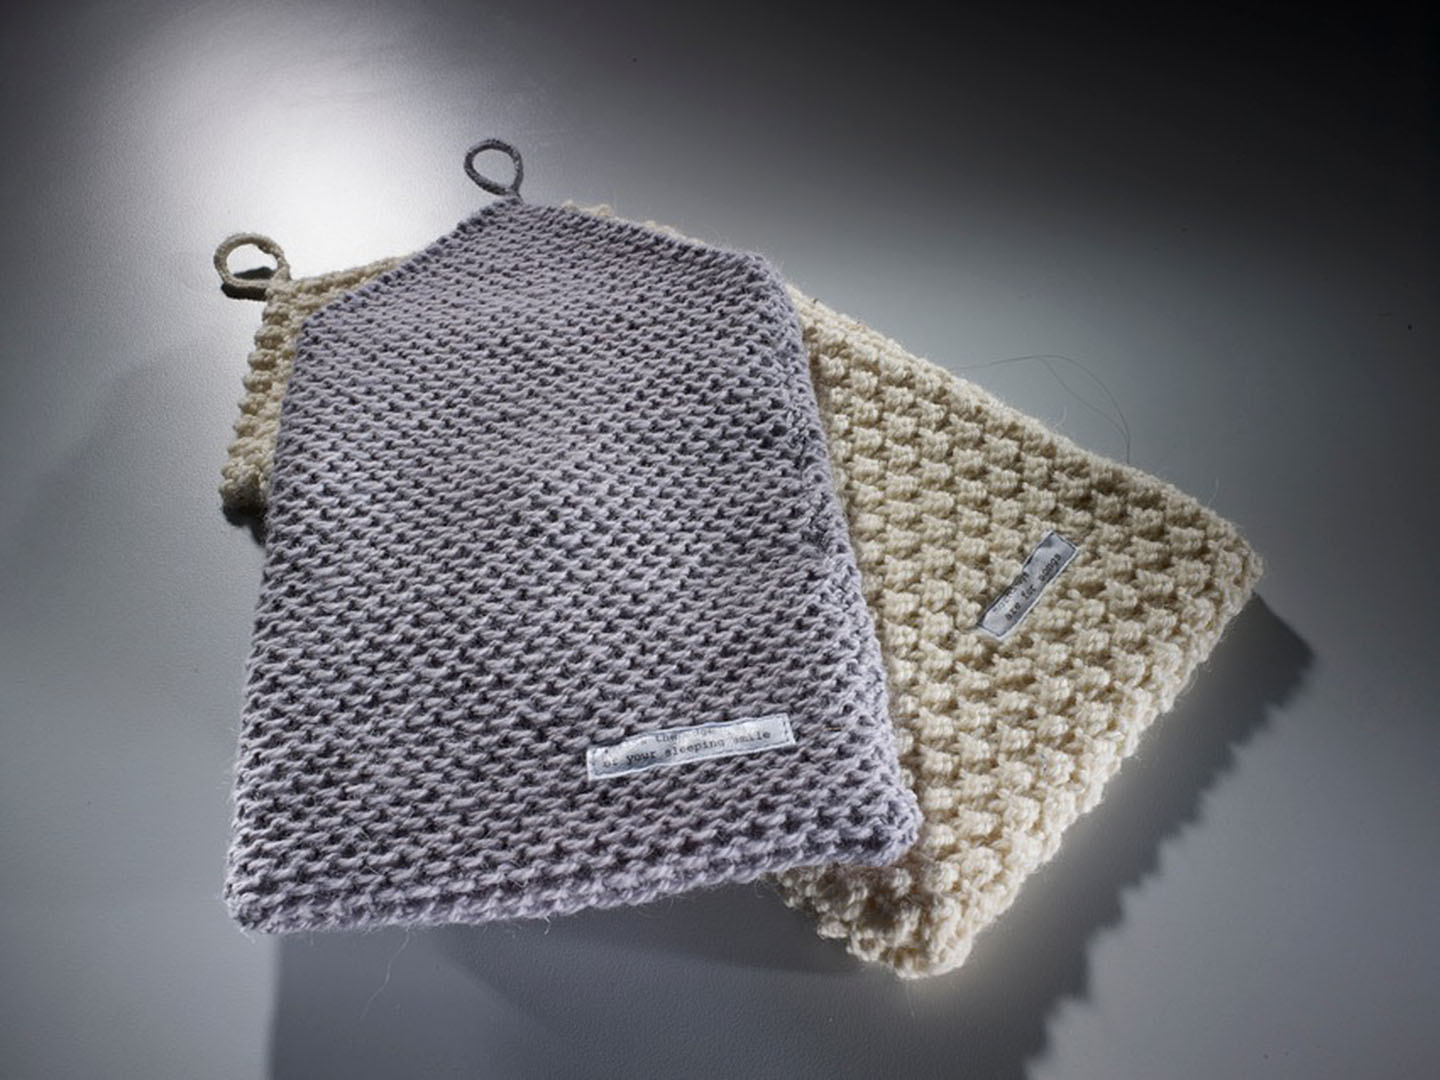 Pickering-Hand-knitted-laptop-cases-poetry-03